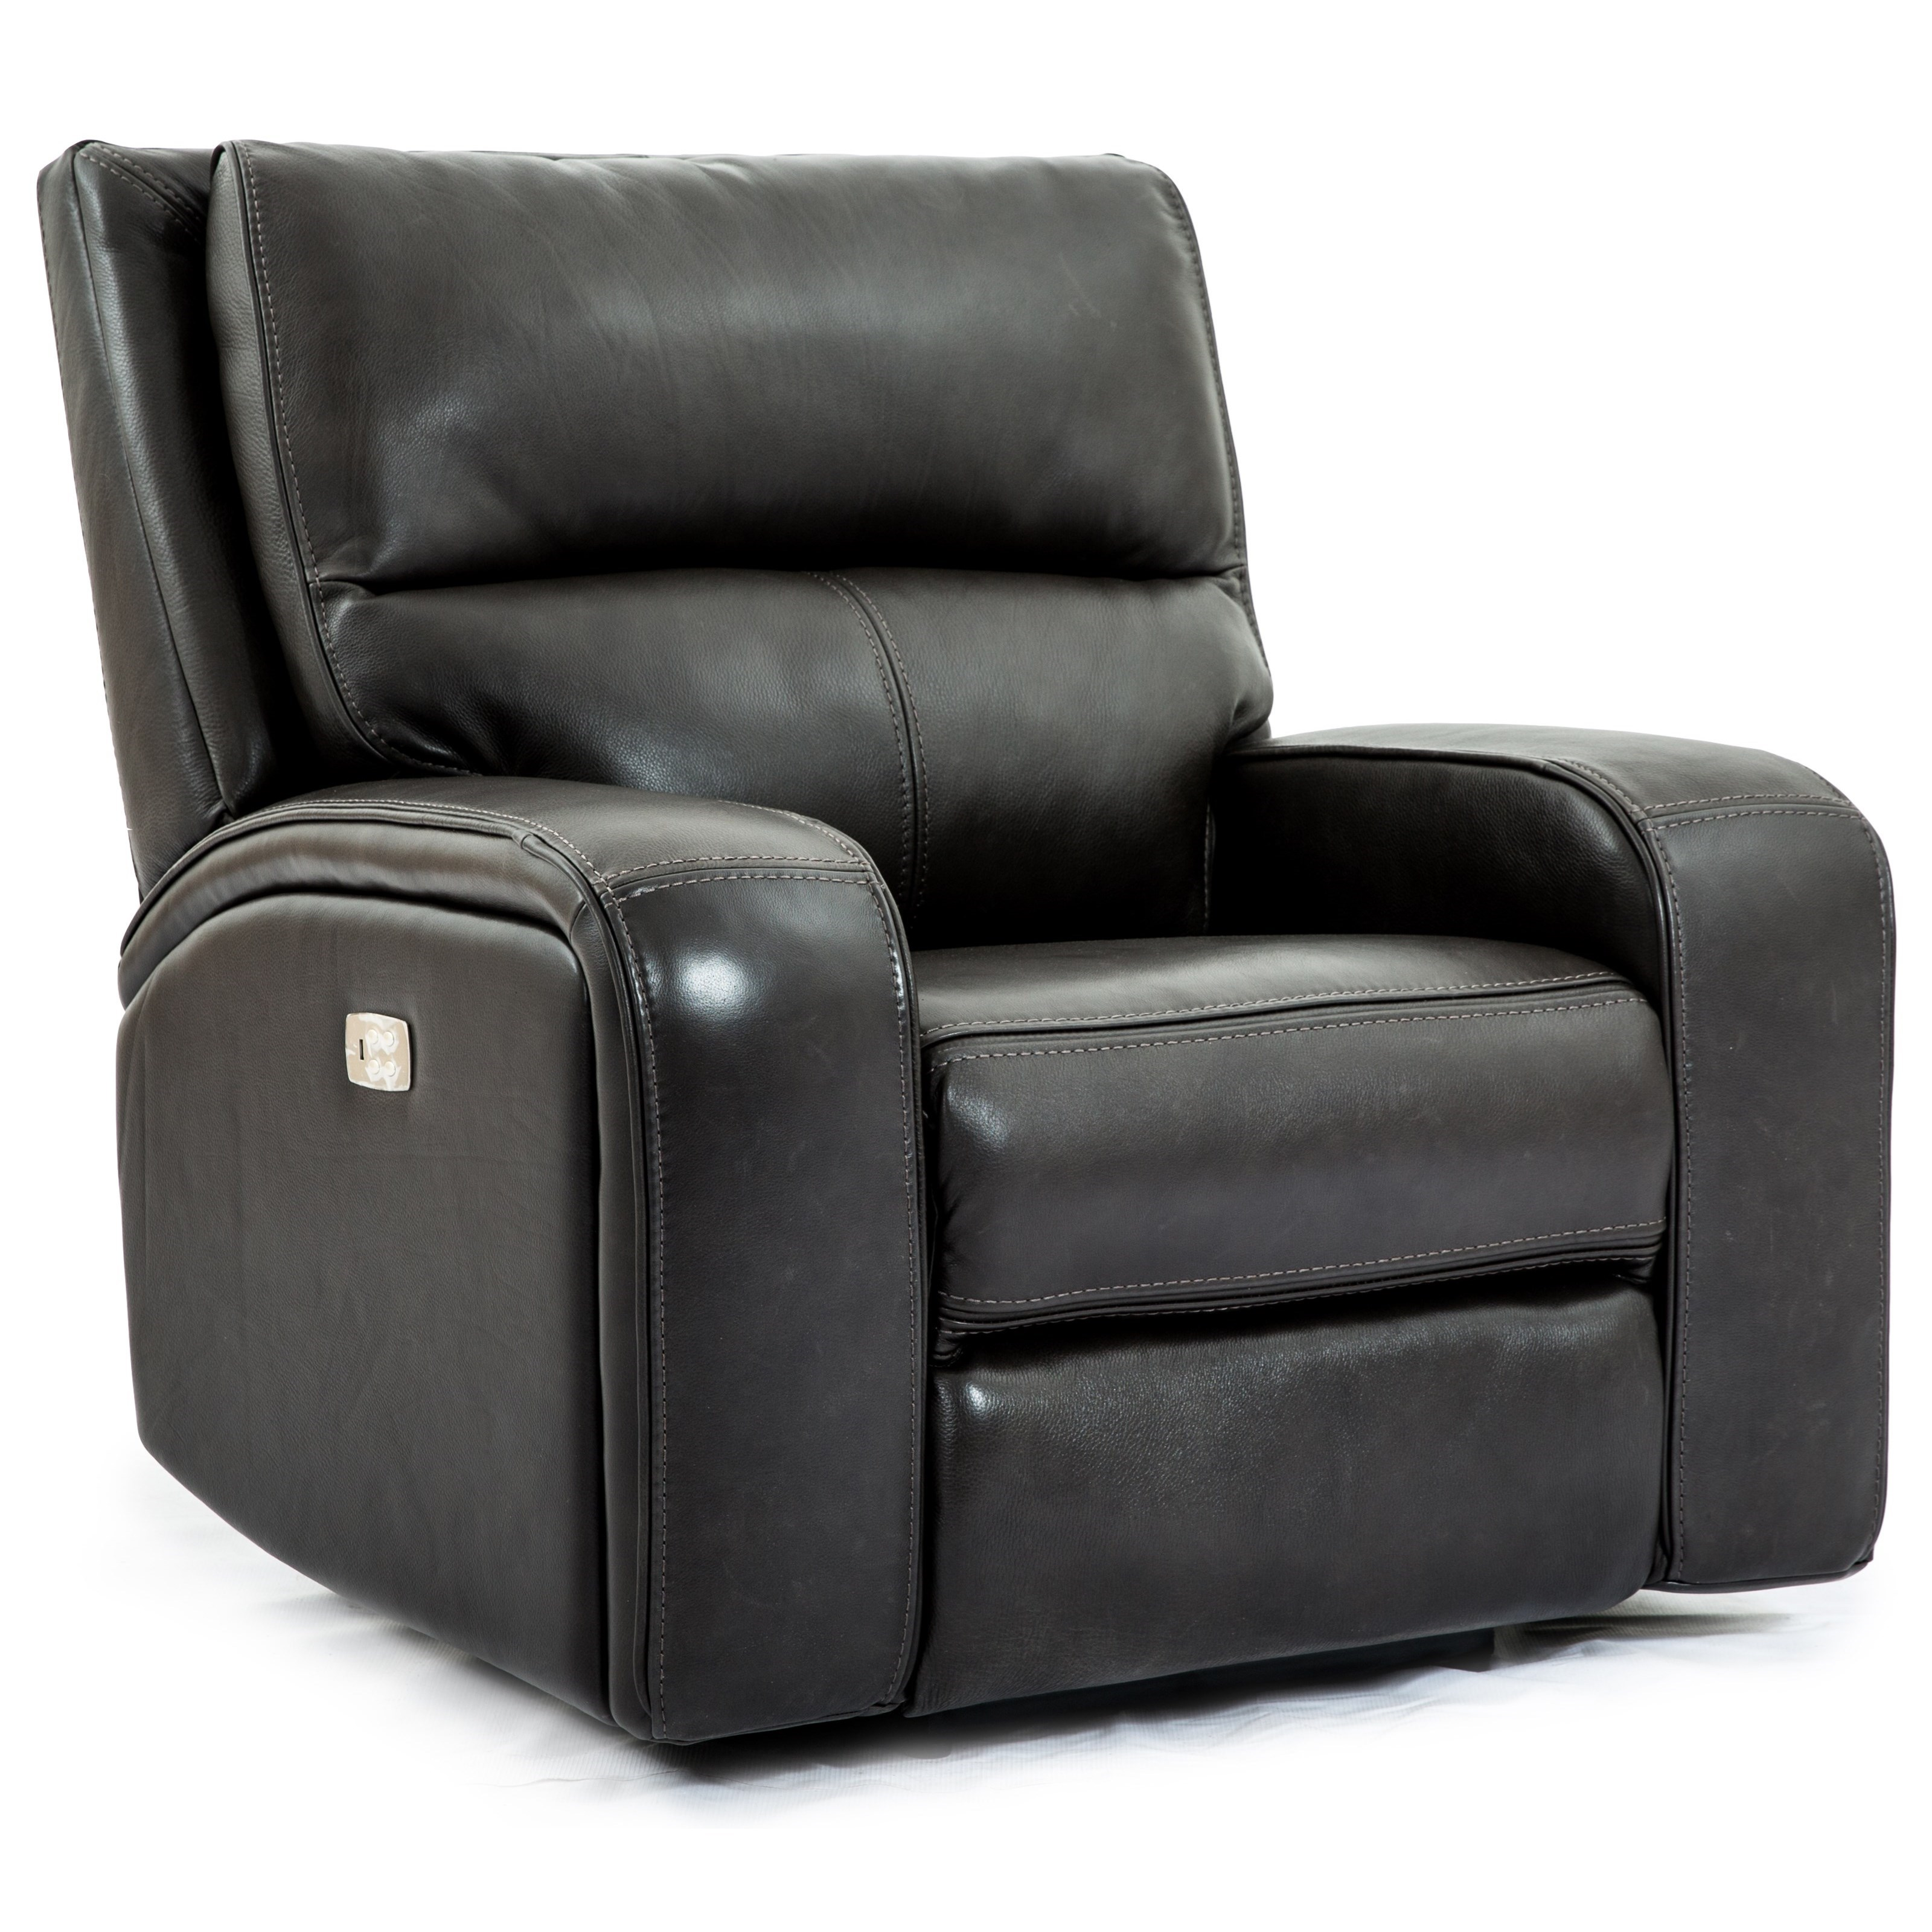 5168HM Power Recliner by Cheers at Lagniappe Home Store